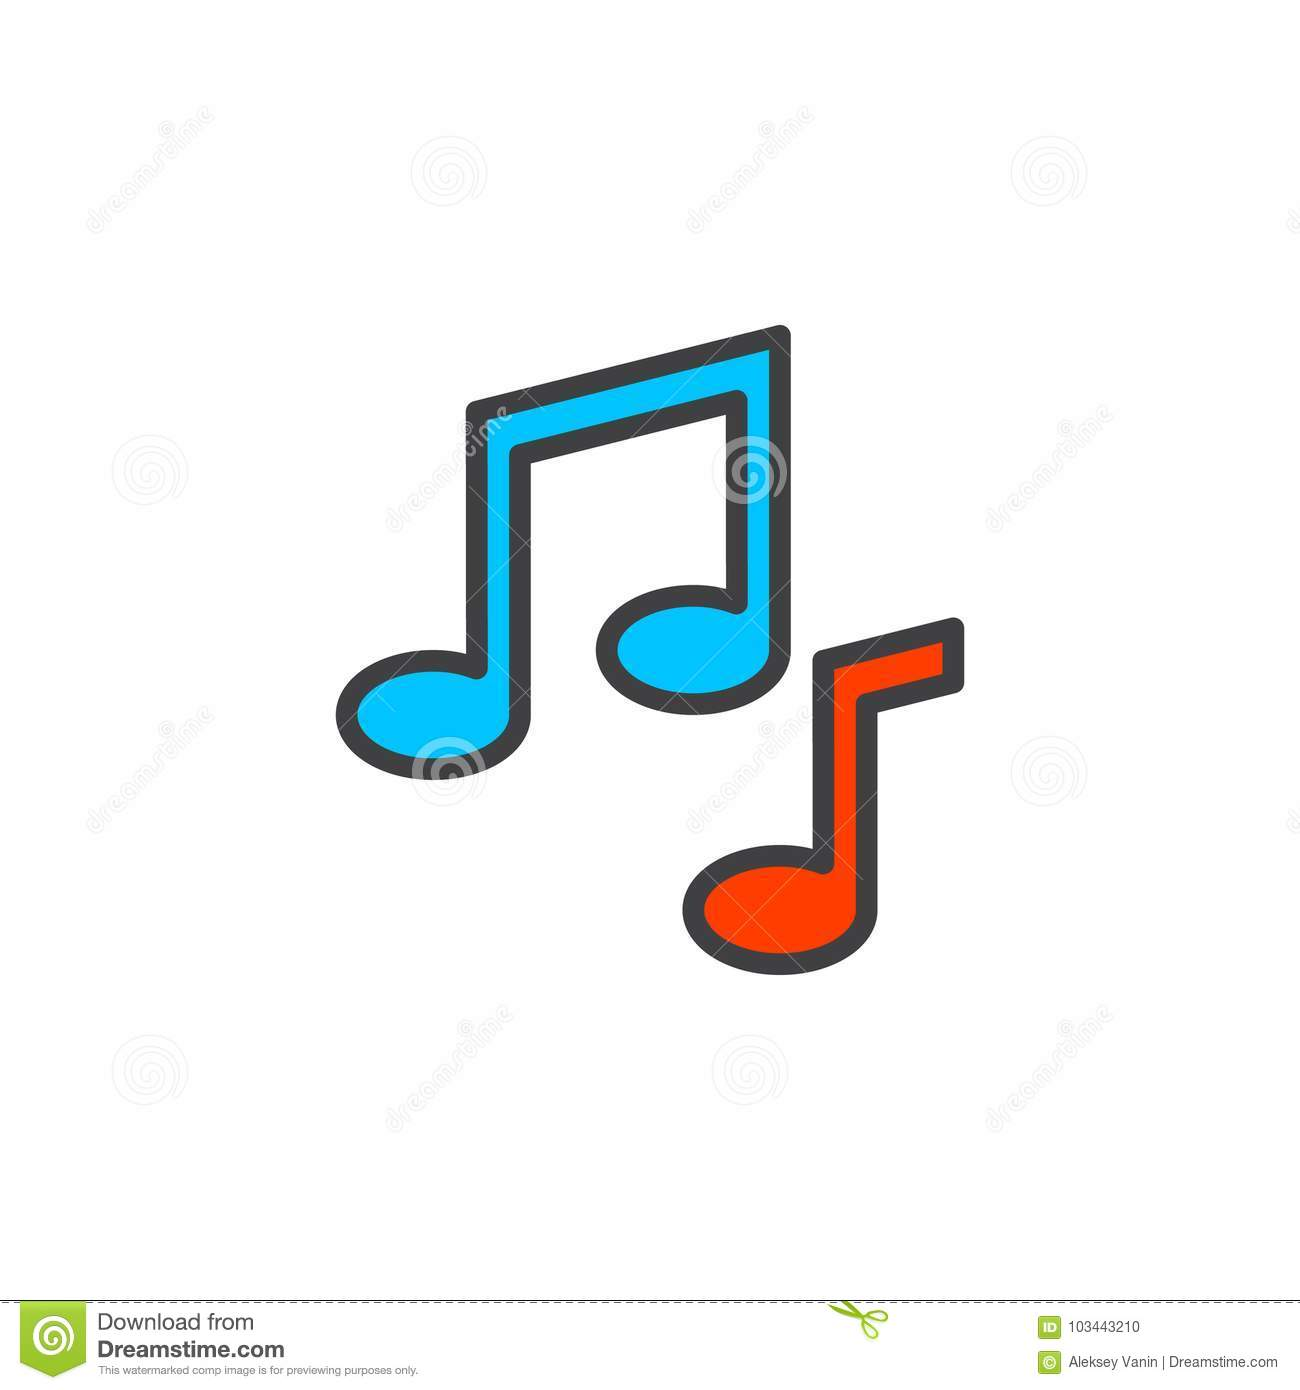 music notes filled outline icon stock vector illustration of rh dreamstime com Transparent Computer Vector Laptop Vector